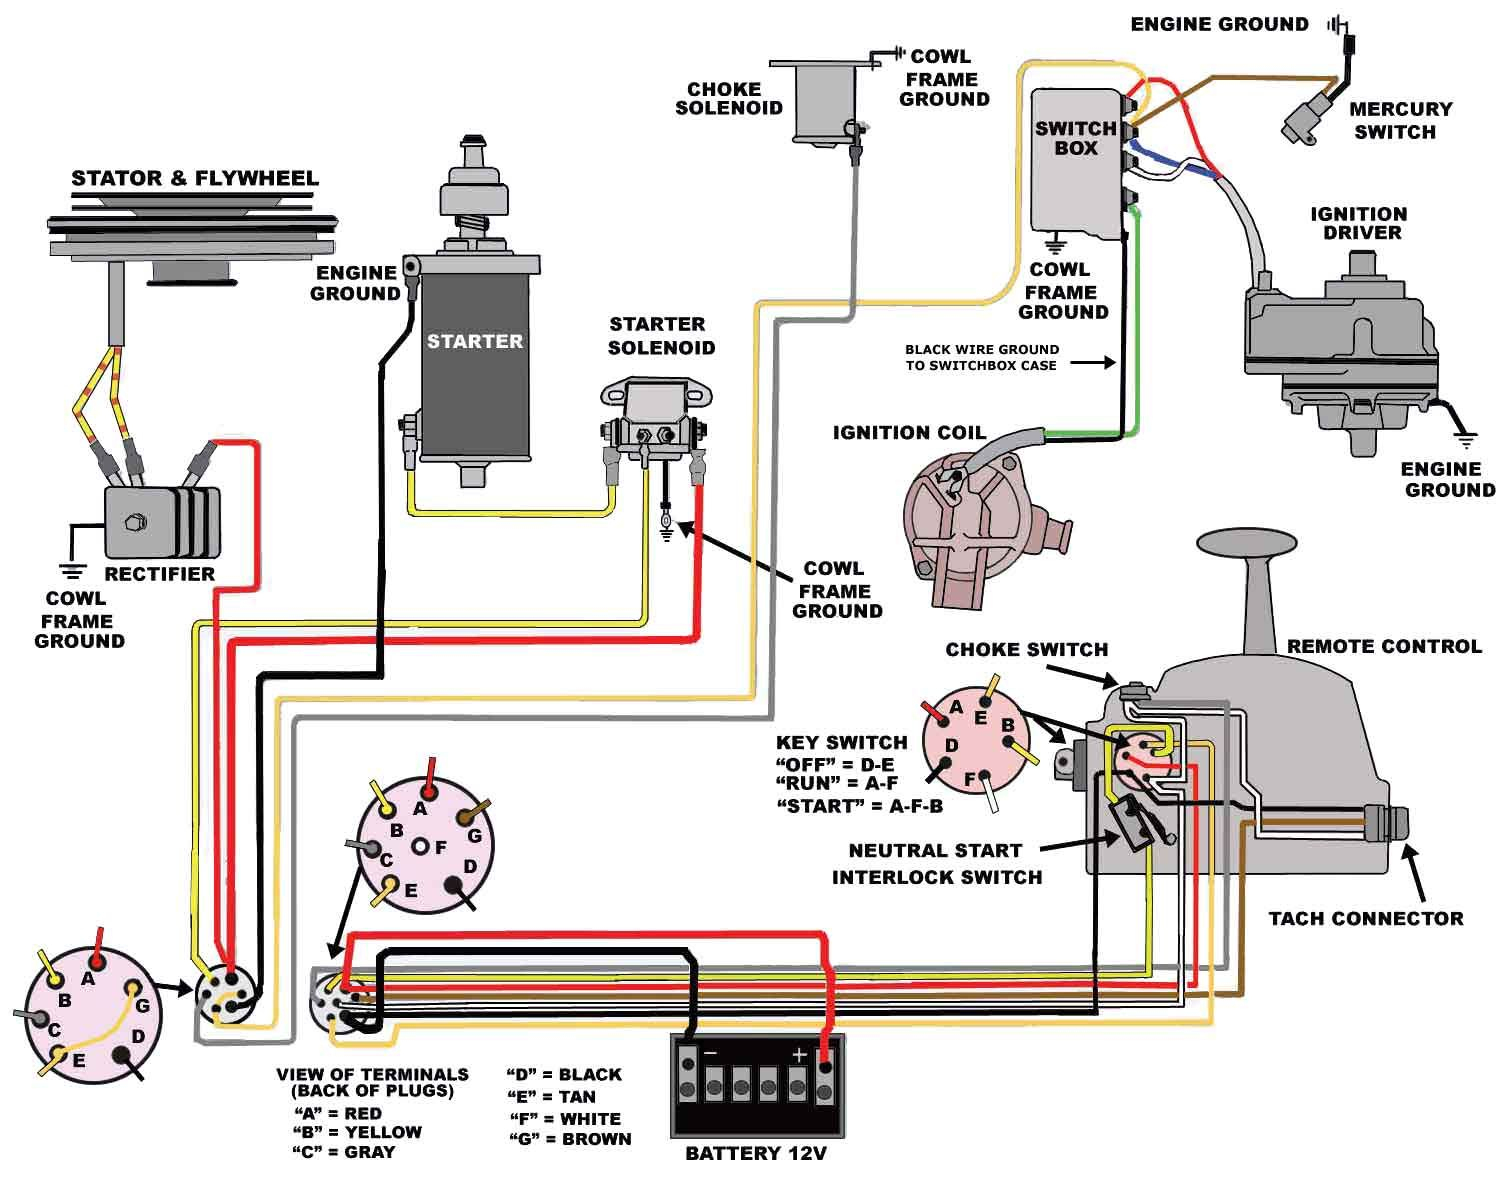 Outboard Motor Wiring Diagram | Manual E-Books - Wiring Diagram For Mercury Outboard Motor